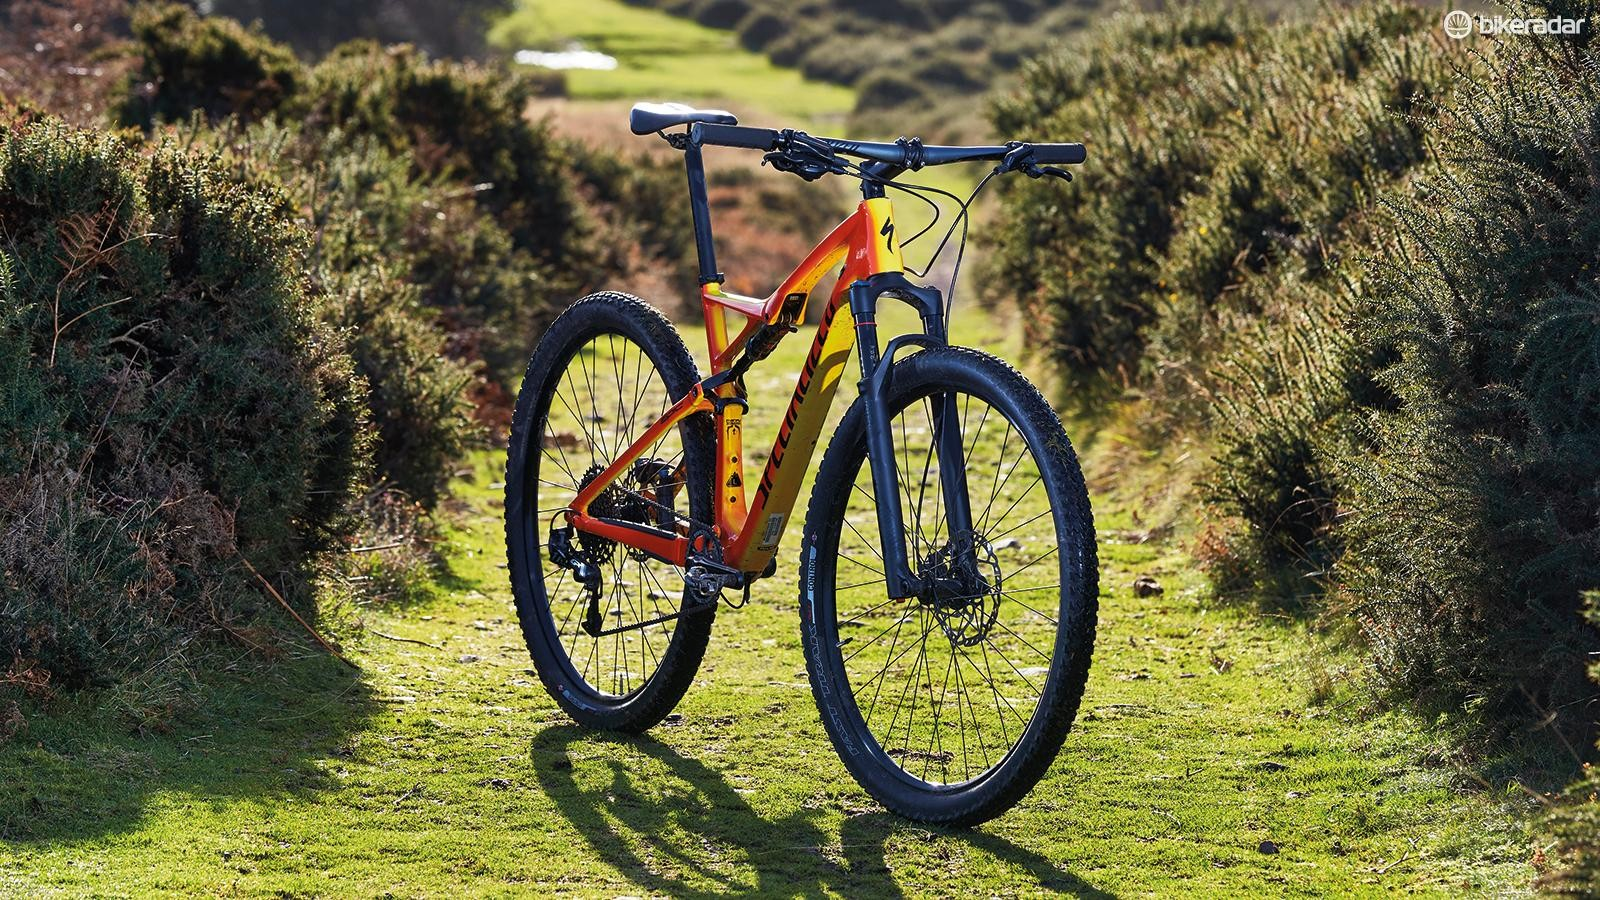 The two-tone paint of the Torch edition is a homage to the thermal paint used on Spesh's Rio Olympics bikes, but there's a black option too